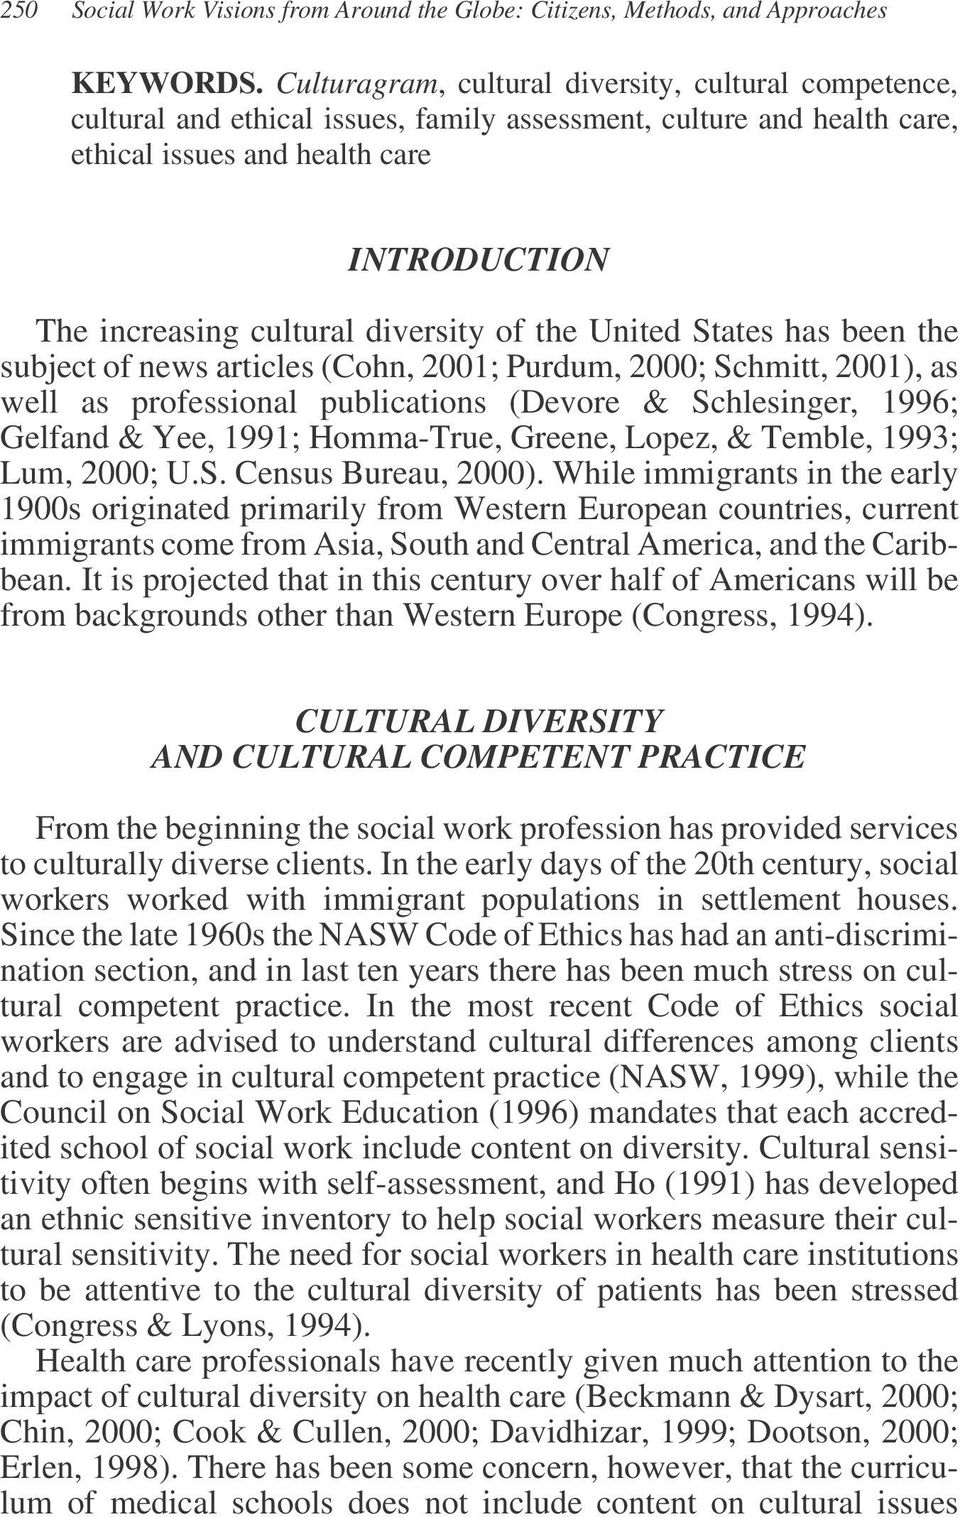 diversity of the United States has been the subject of news articles (Cohn, 2001; Purdum, 2000; Schmitt, 2001), as well as professional publications (Devore & Schlesinger, 1996; Gelfand & Yee, 1991;